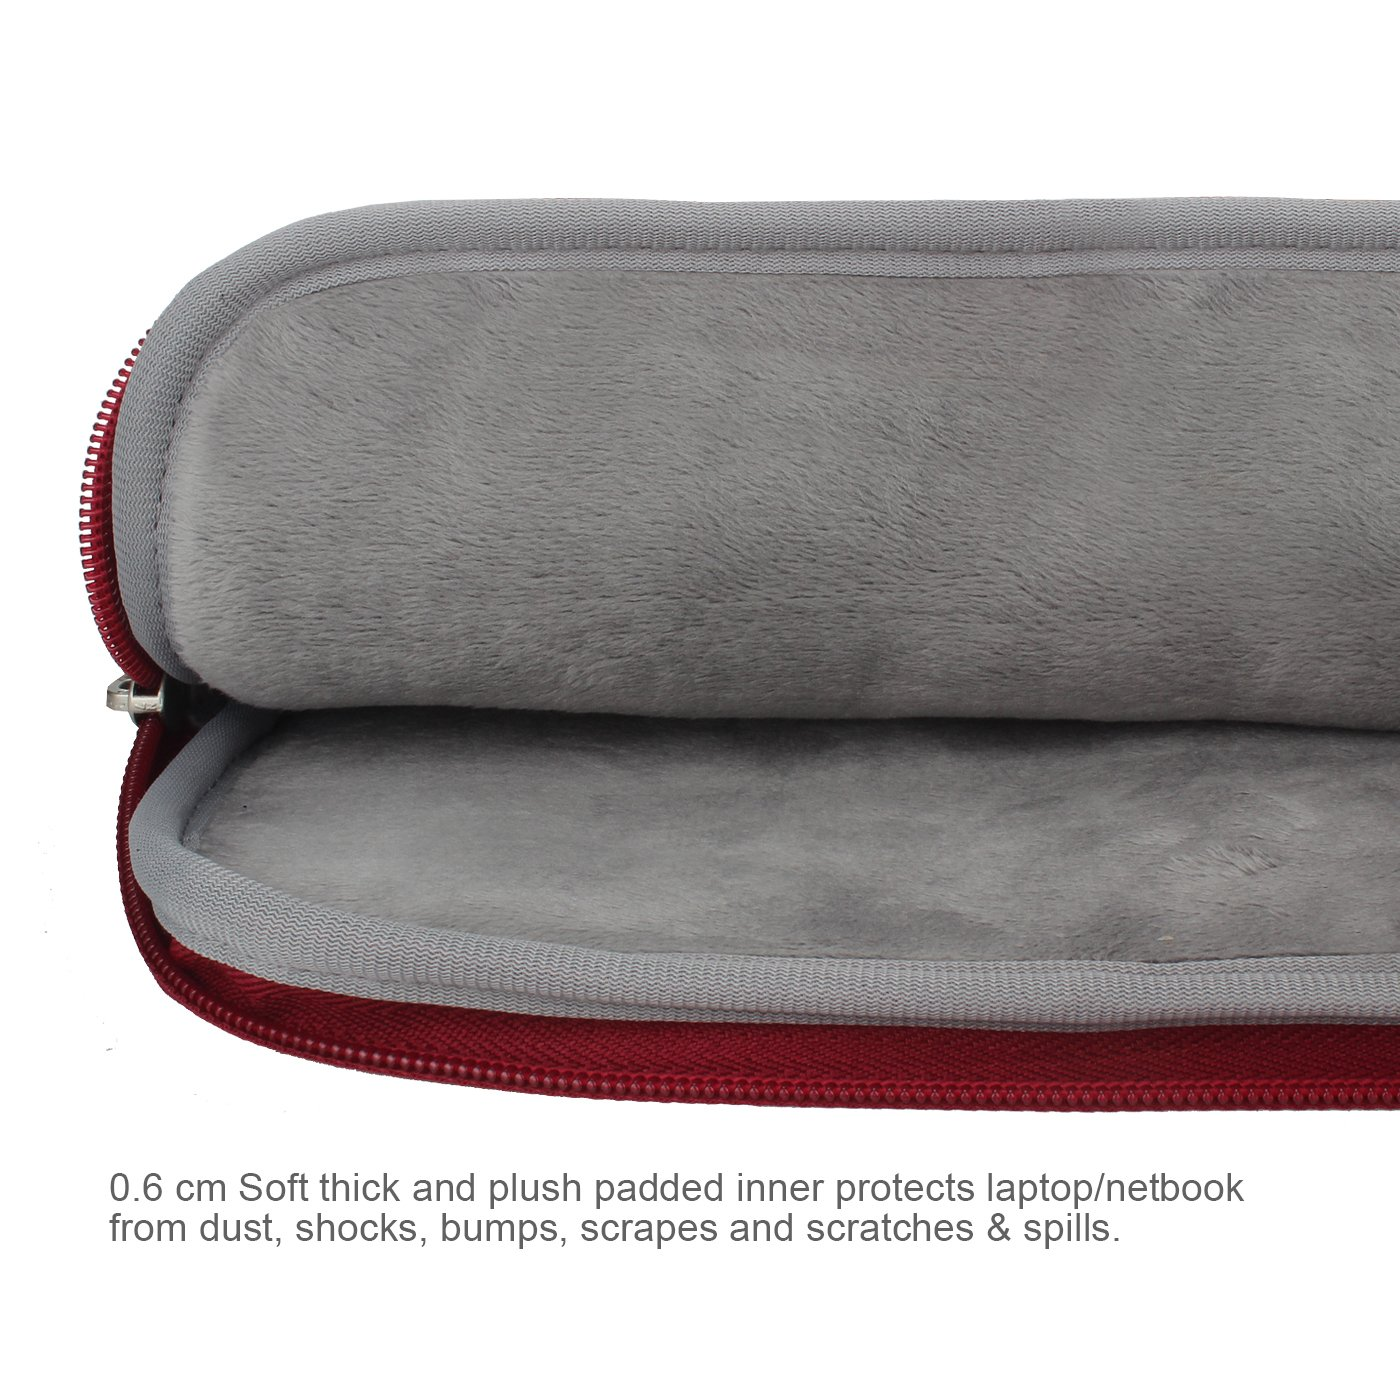 Arvok 15 15.6 16 Inch Water-resistant Canvas Fabric Laptop Sleeve With Handle&Zipper Pocket/Notebook Computer Case/Ultrabook Briefcase Carrying Bag/Pouch Cover For Acer/Asus/Dell/Lenovo/HP,Wine Red by ARVOK (Image #5)